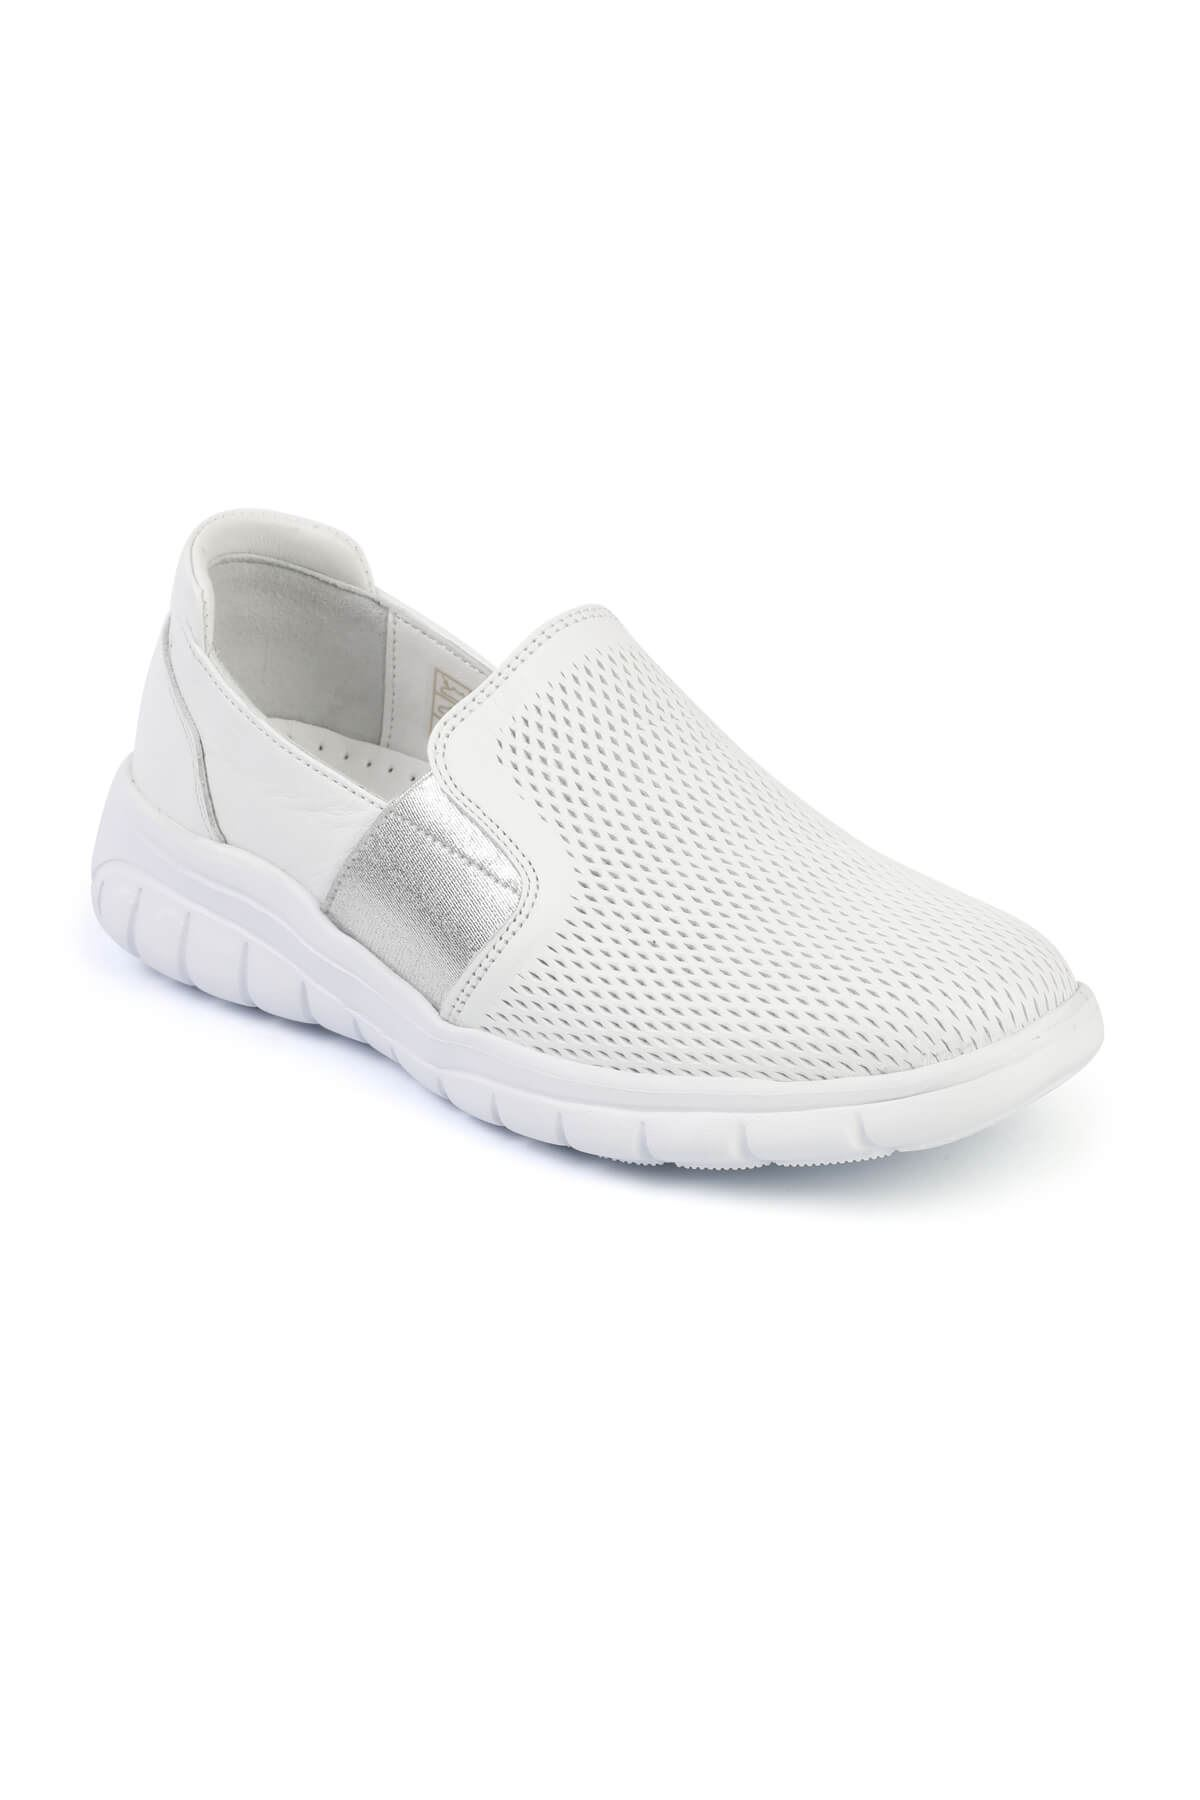 Libero FMS230 White Sport Shoes